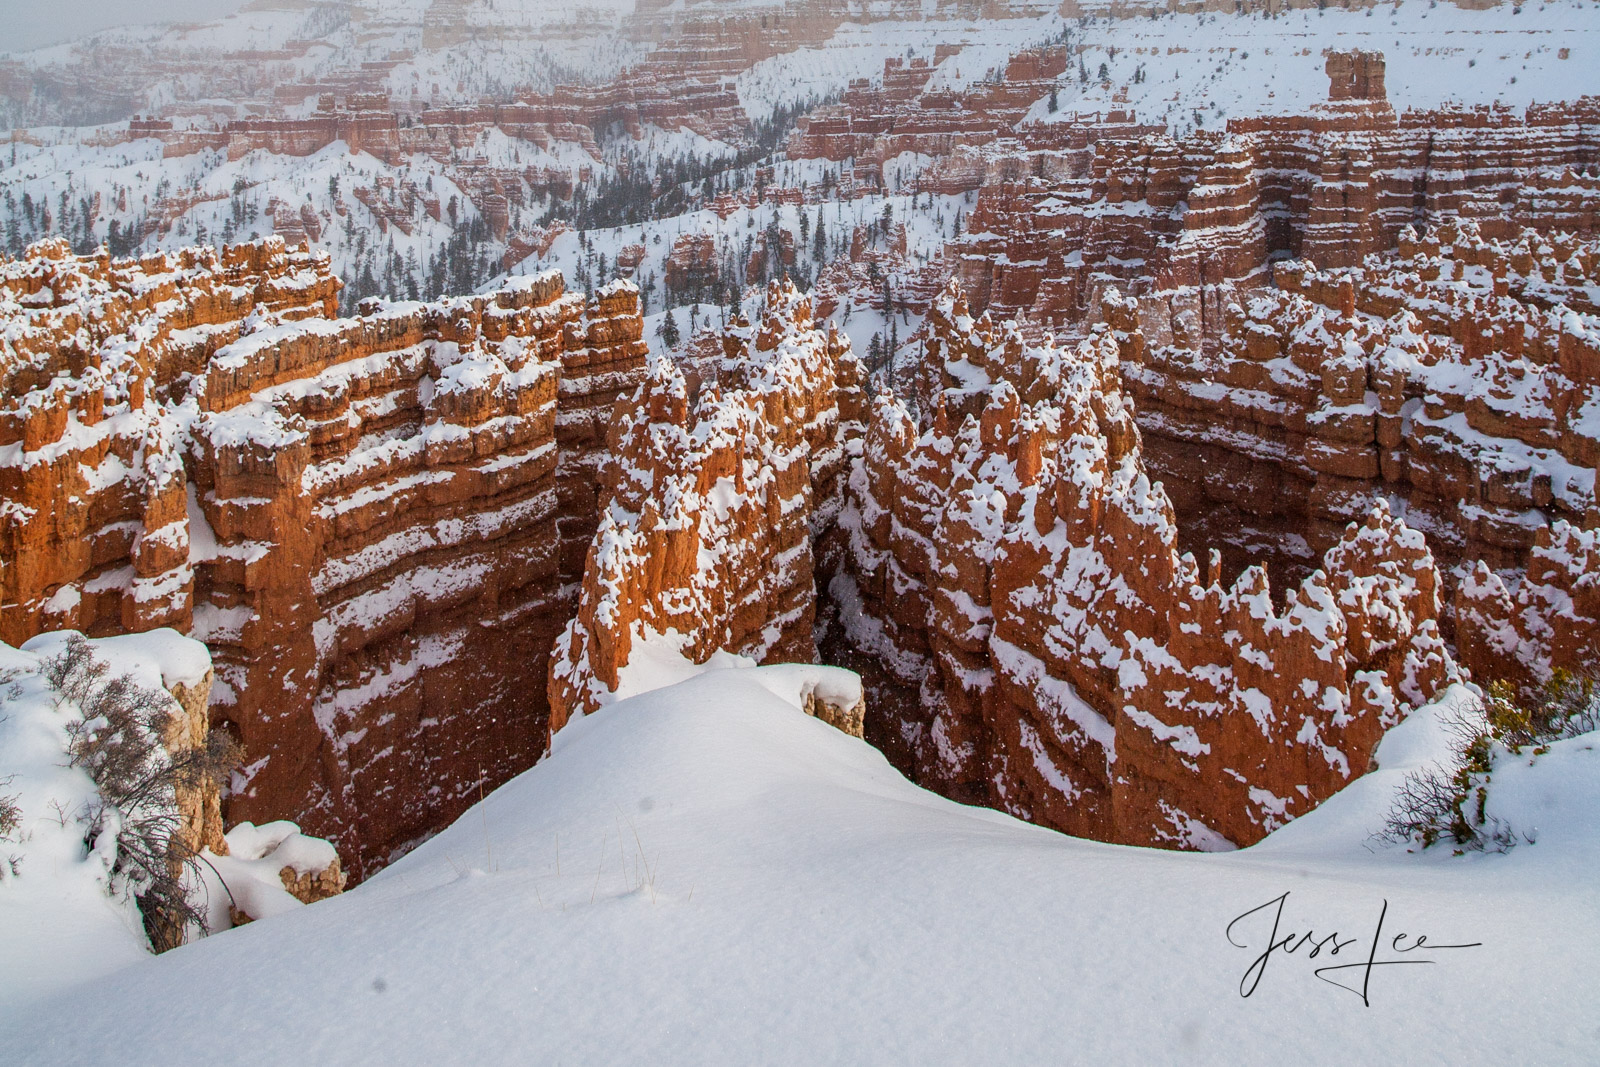 Limited Edition of 50 Exclusive high-resolution Museum Quality Fine Art Prints of Red Rocks ridges Bryce Canyon. Photos Copyright...